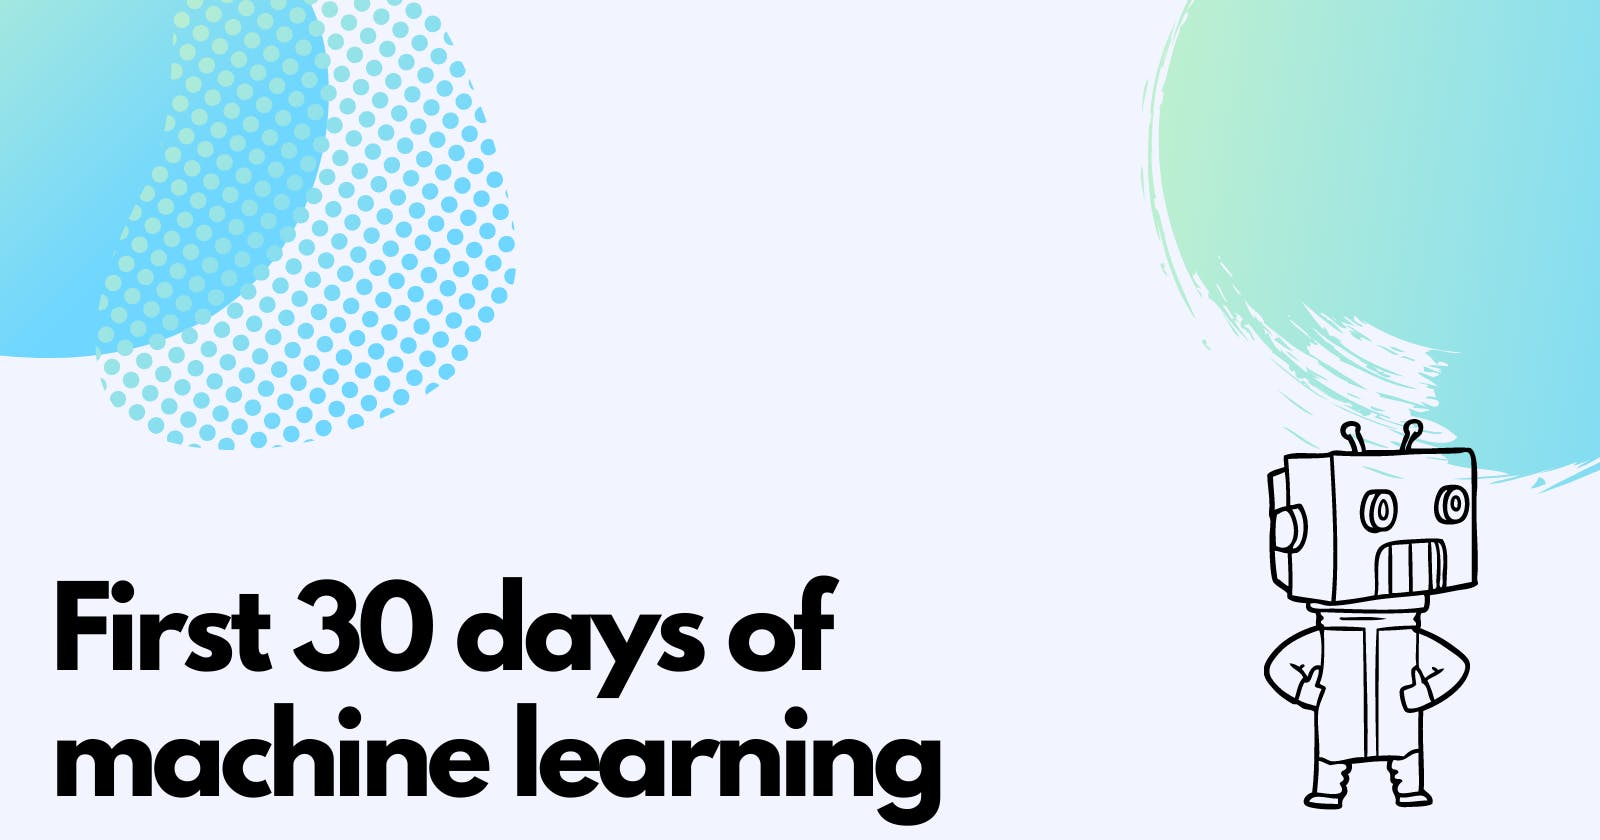 This is what your first 30 days of machine learning should look like.